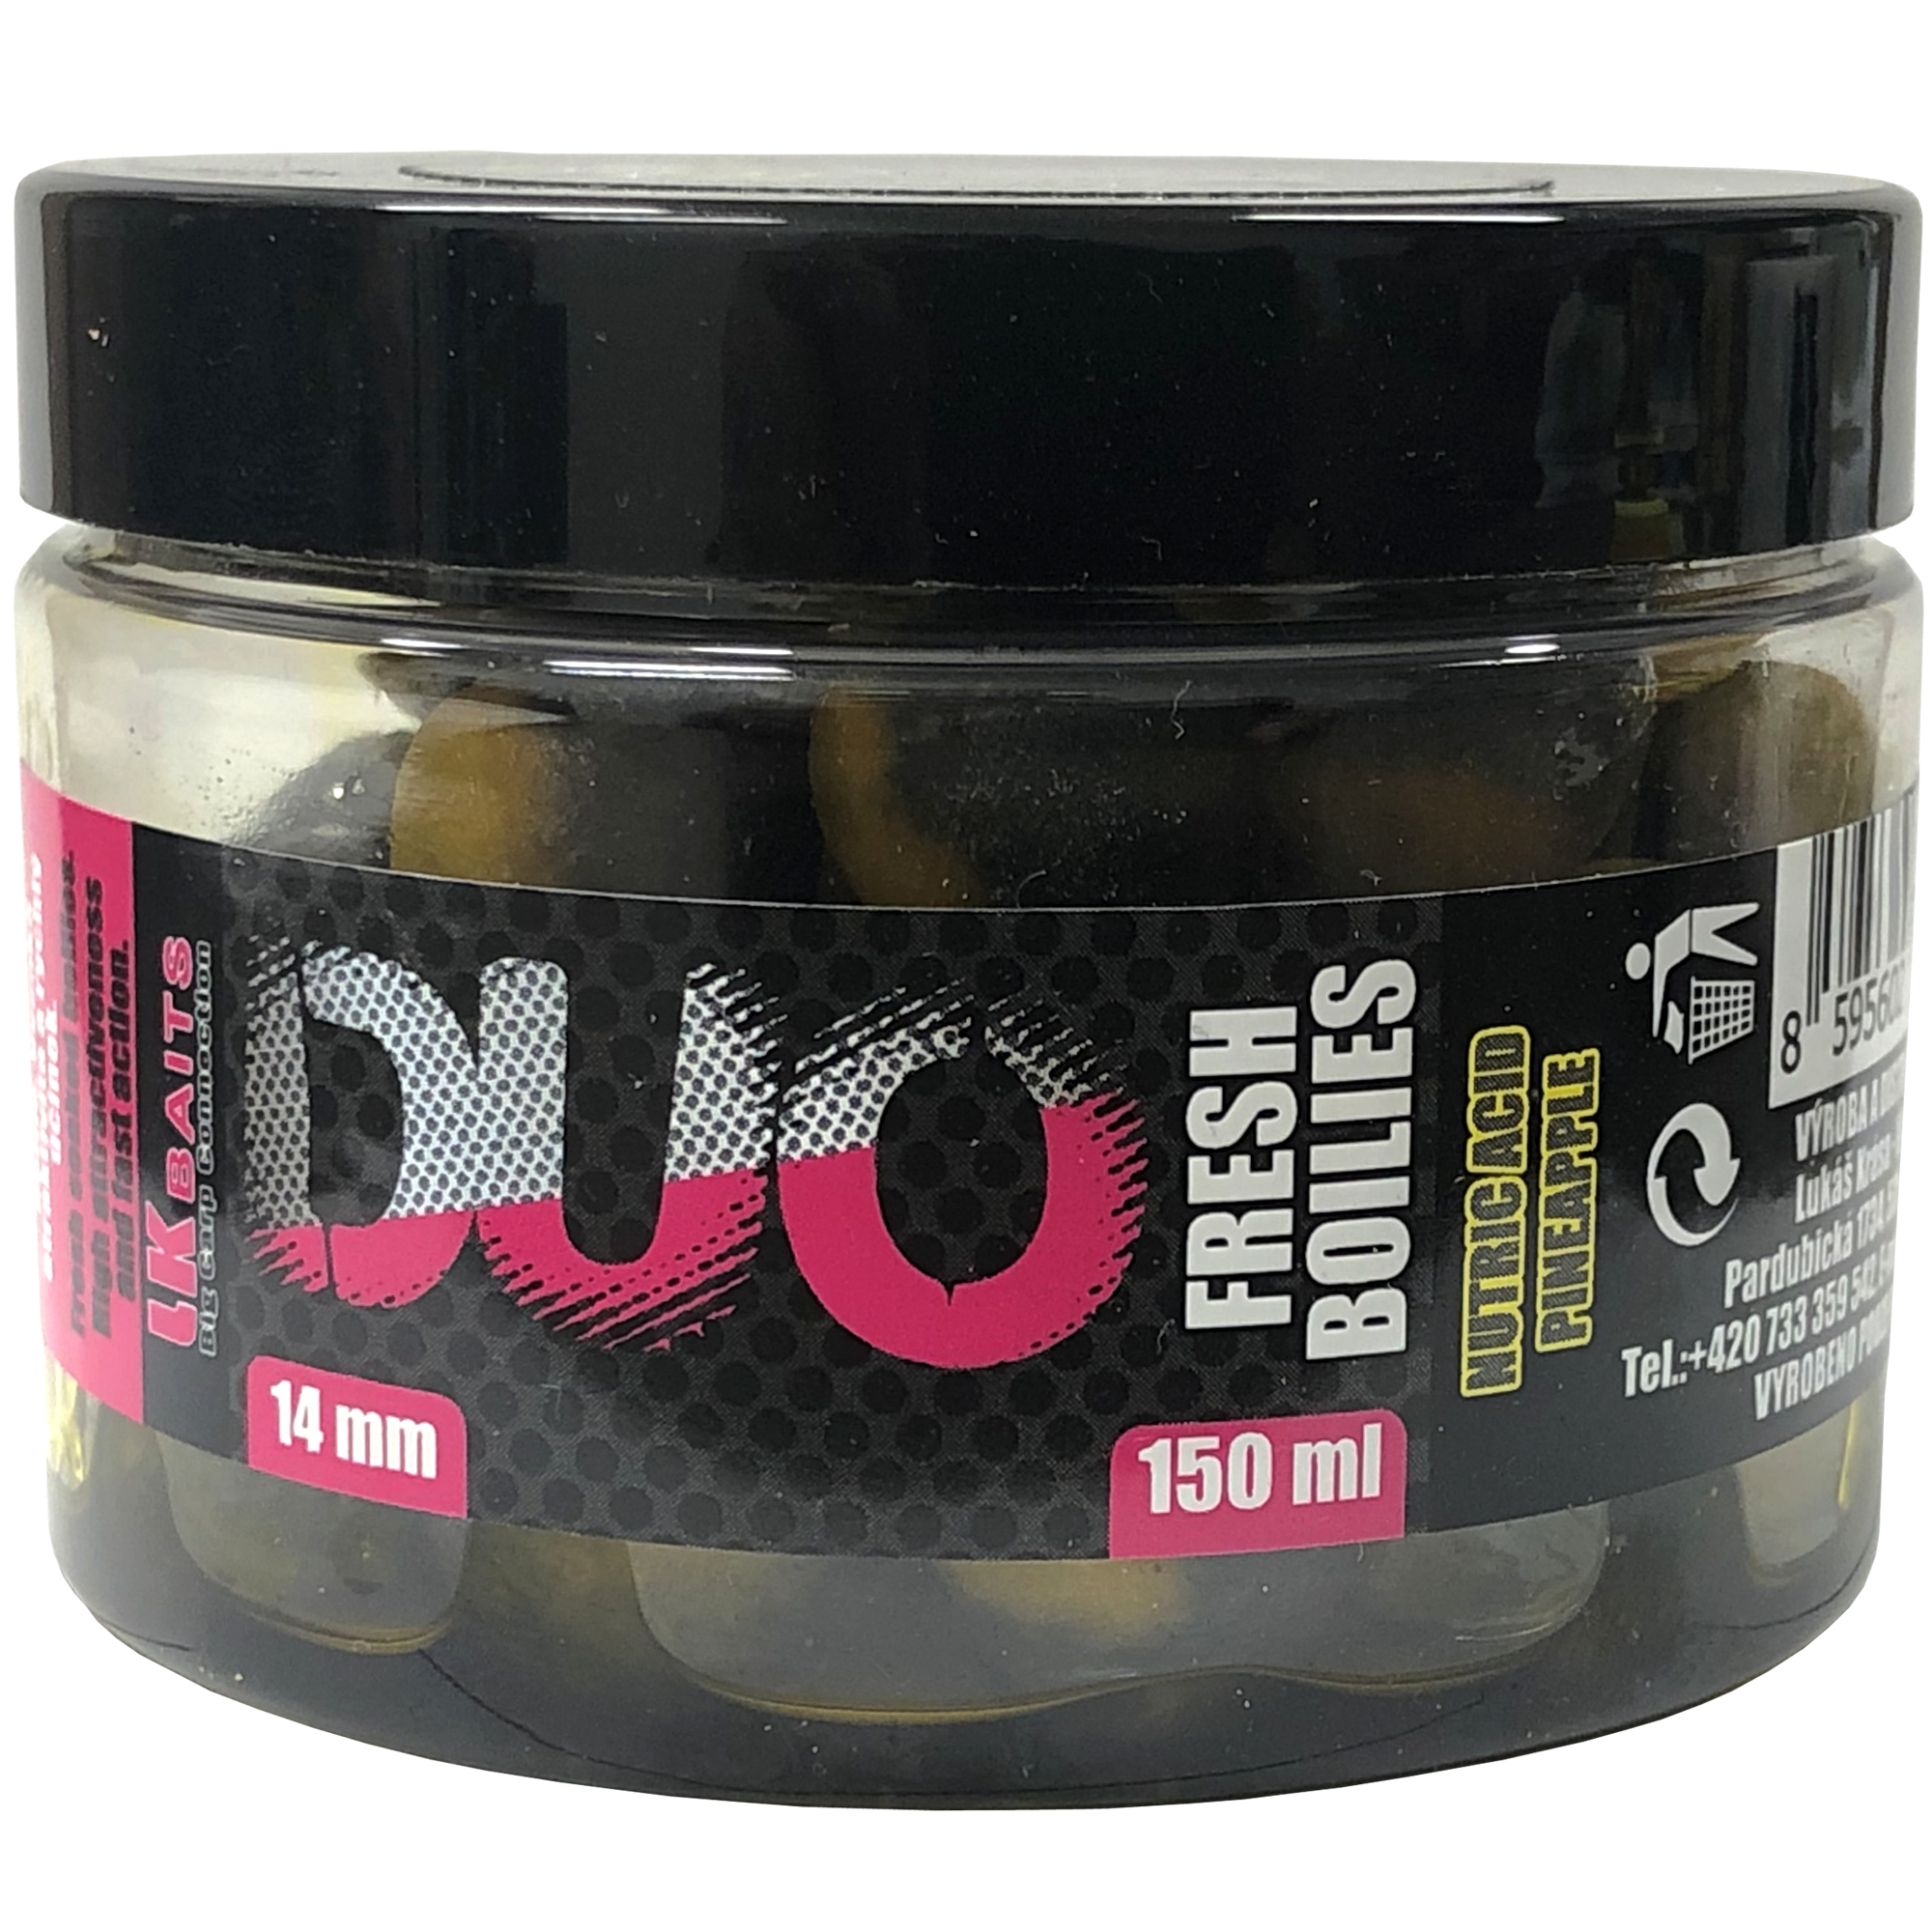 LK Baits DUO X-Tra Fresh Boilies Nutric Acid-Pineapple 14mm 150ml